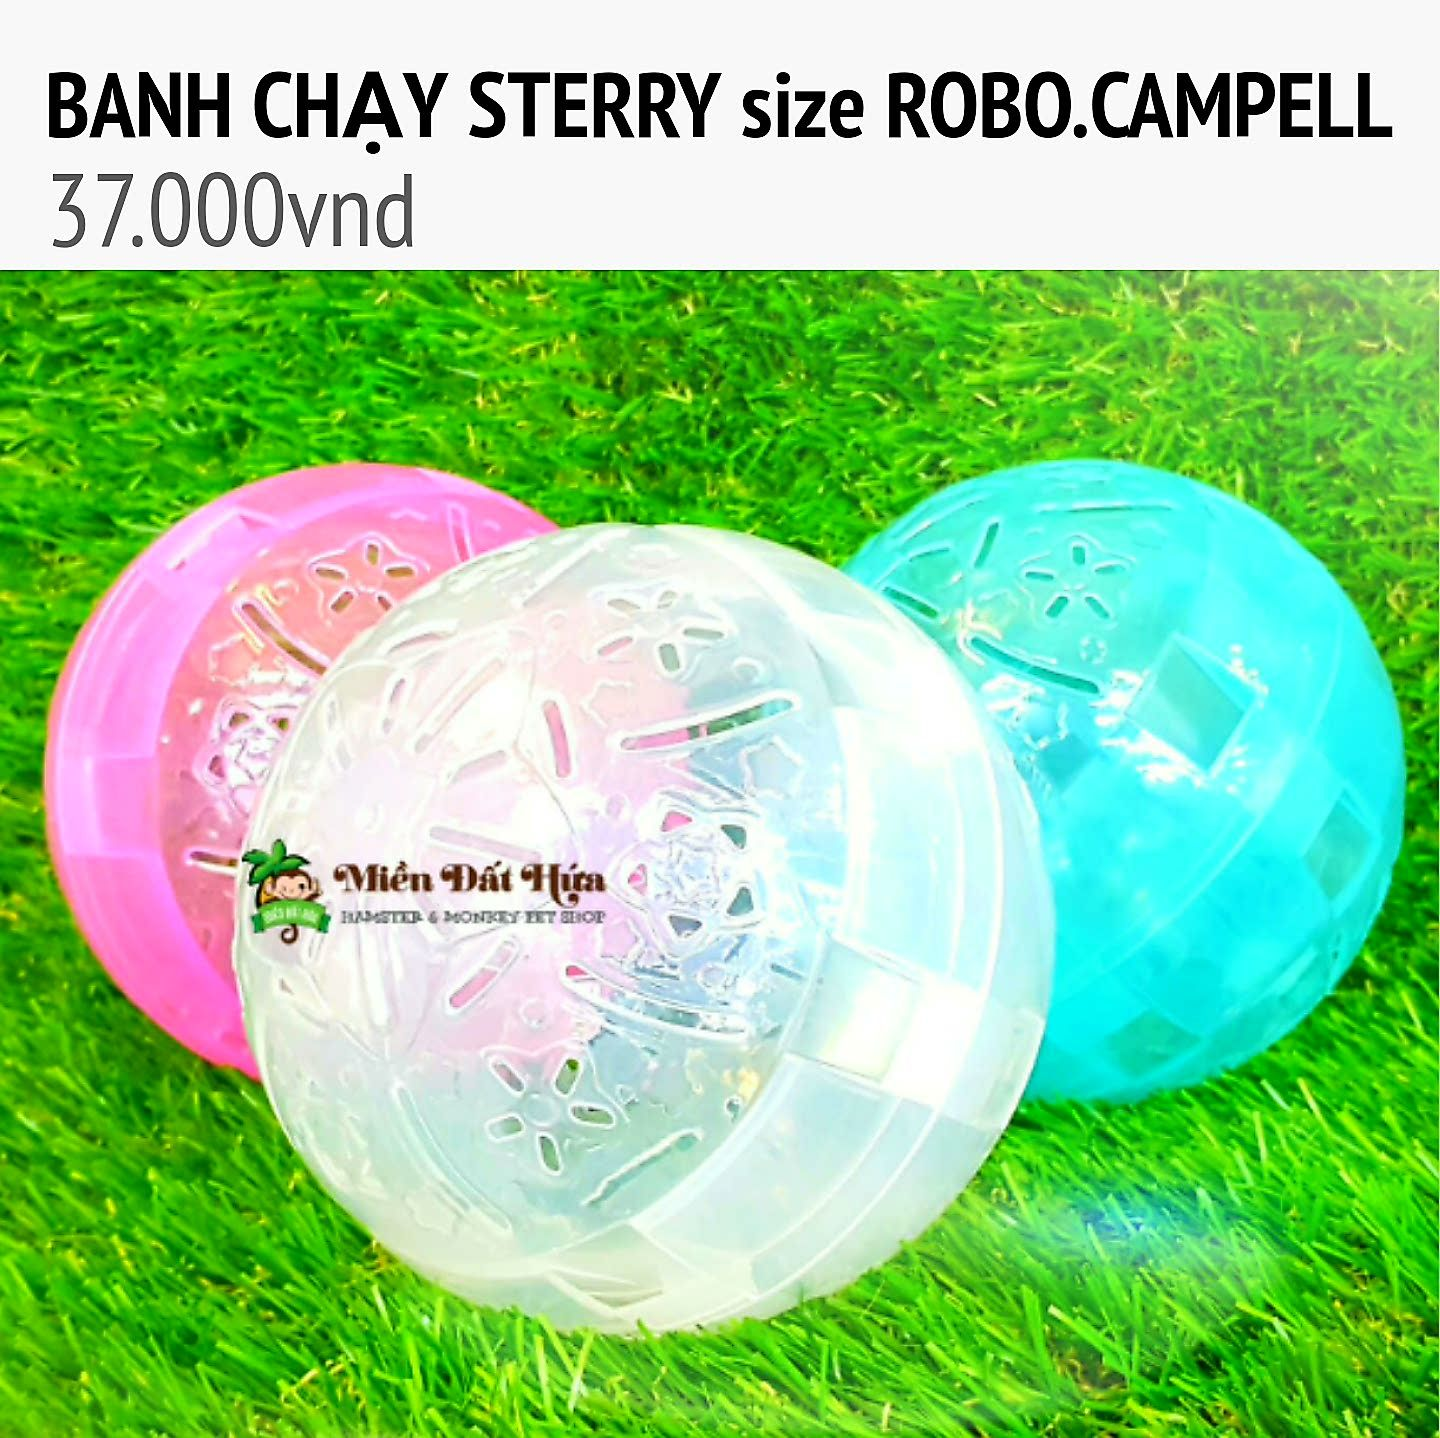 banh chạy steery size robo campell